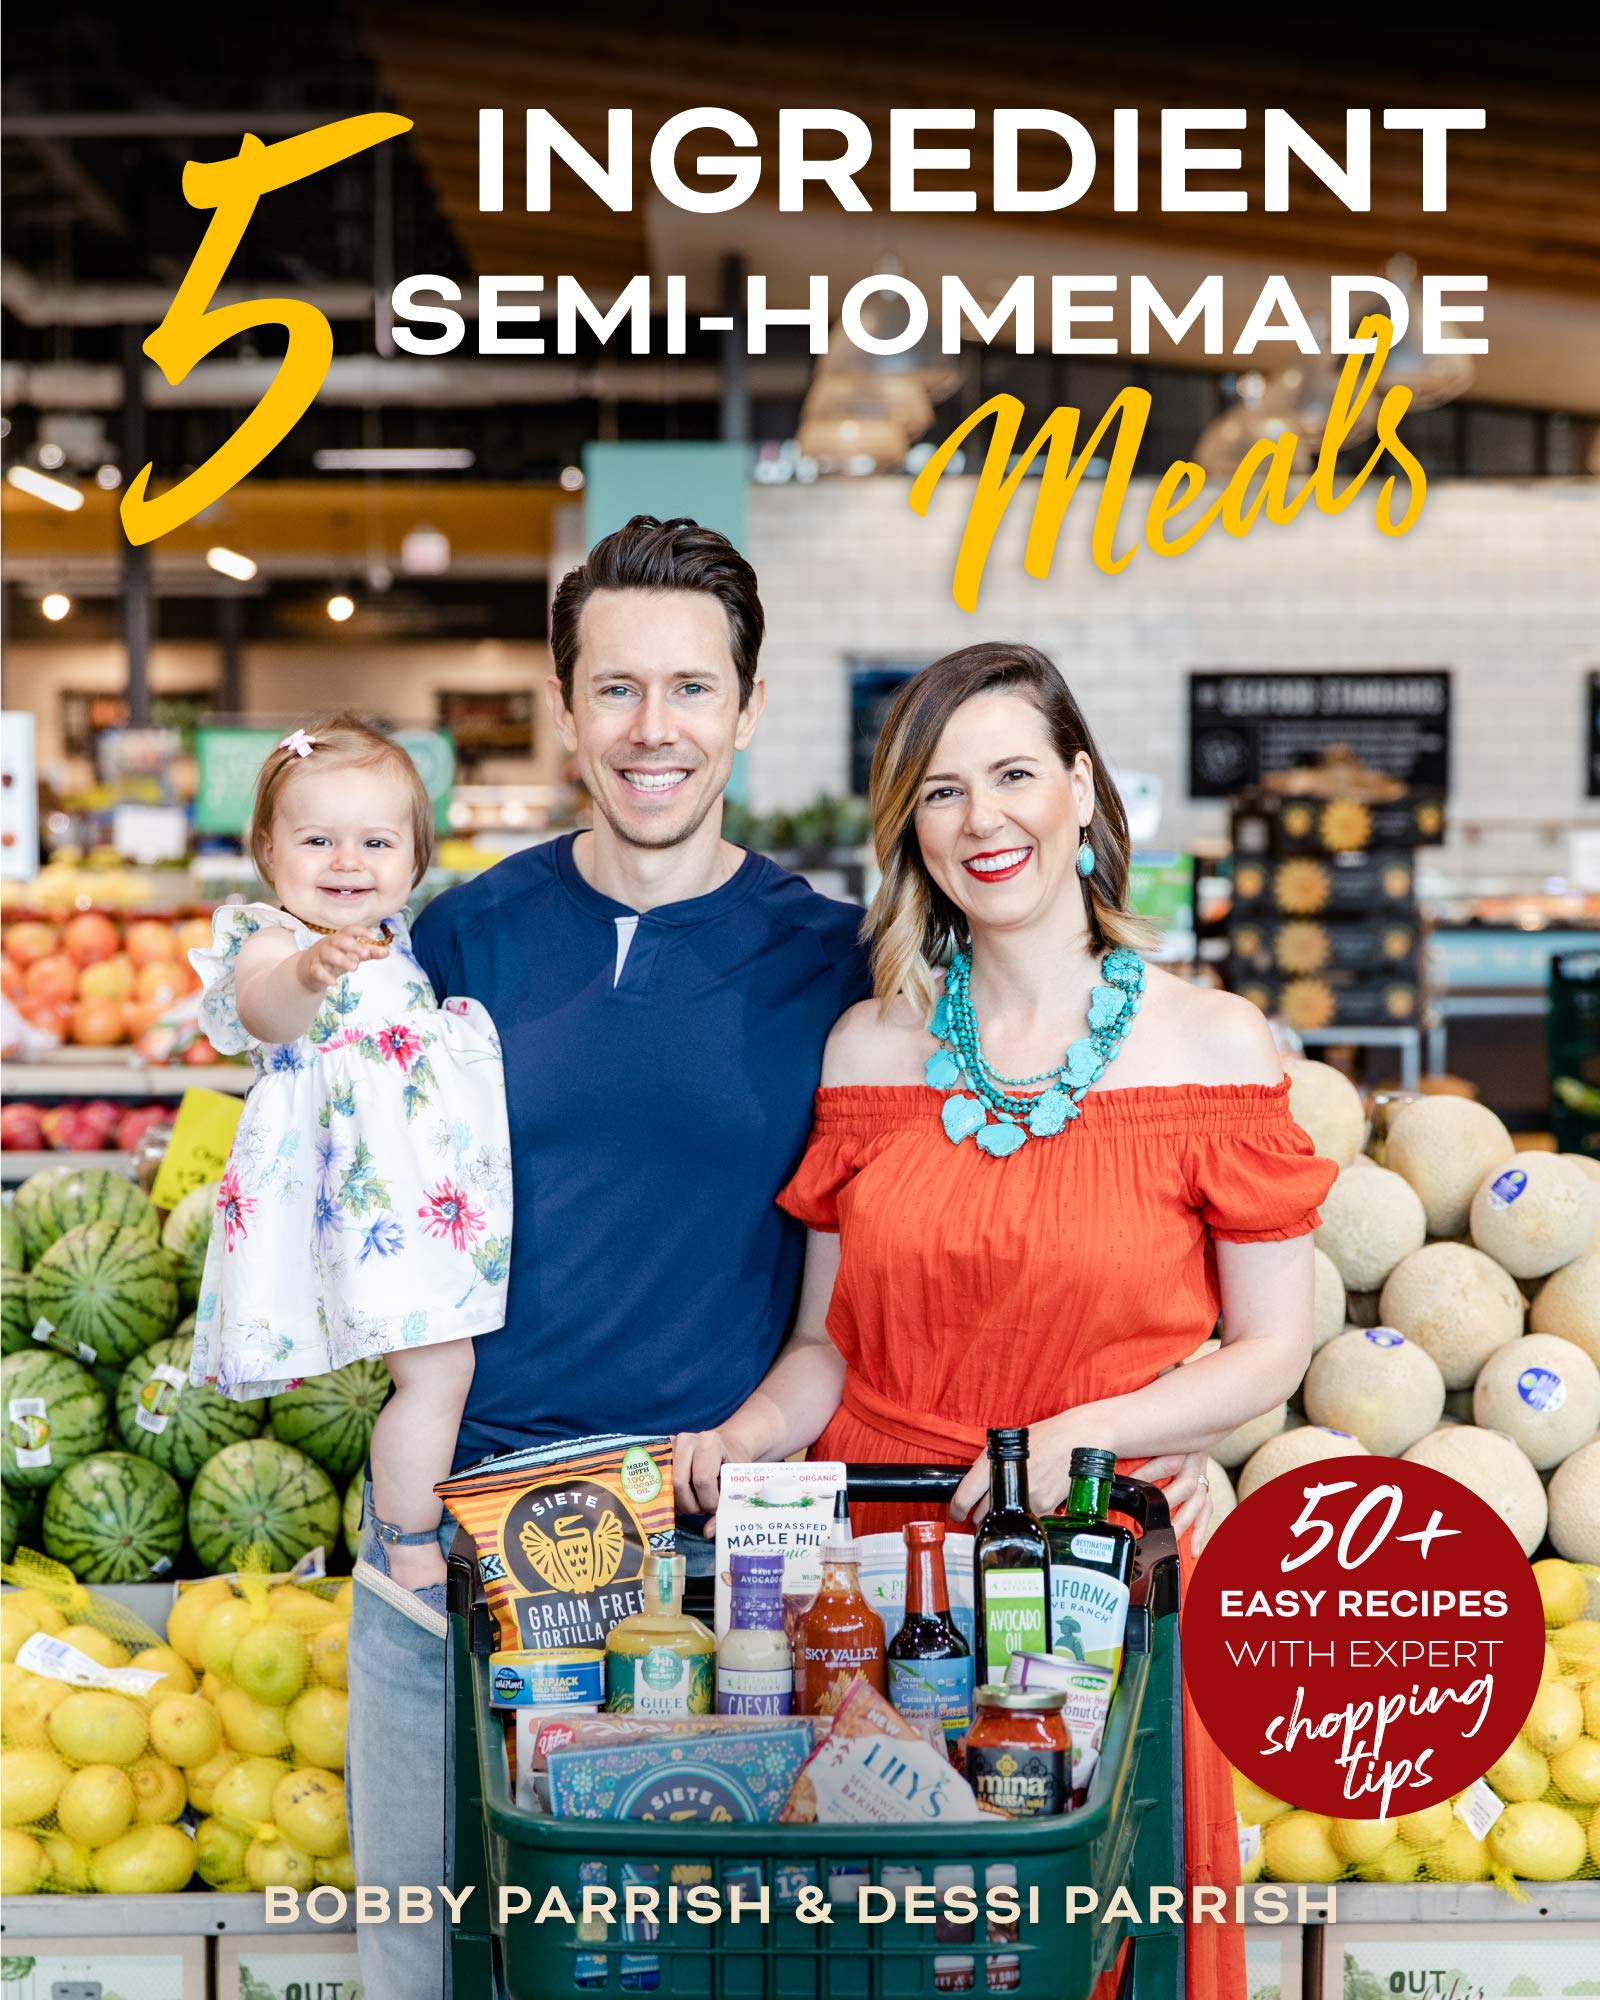 5 Ingredient Semi-Homemade Meals: 50 Easy & Tasty Recipes Using the Best Ingredients from the Grocery Store